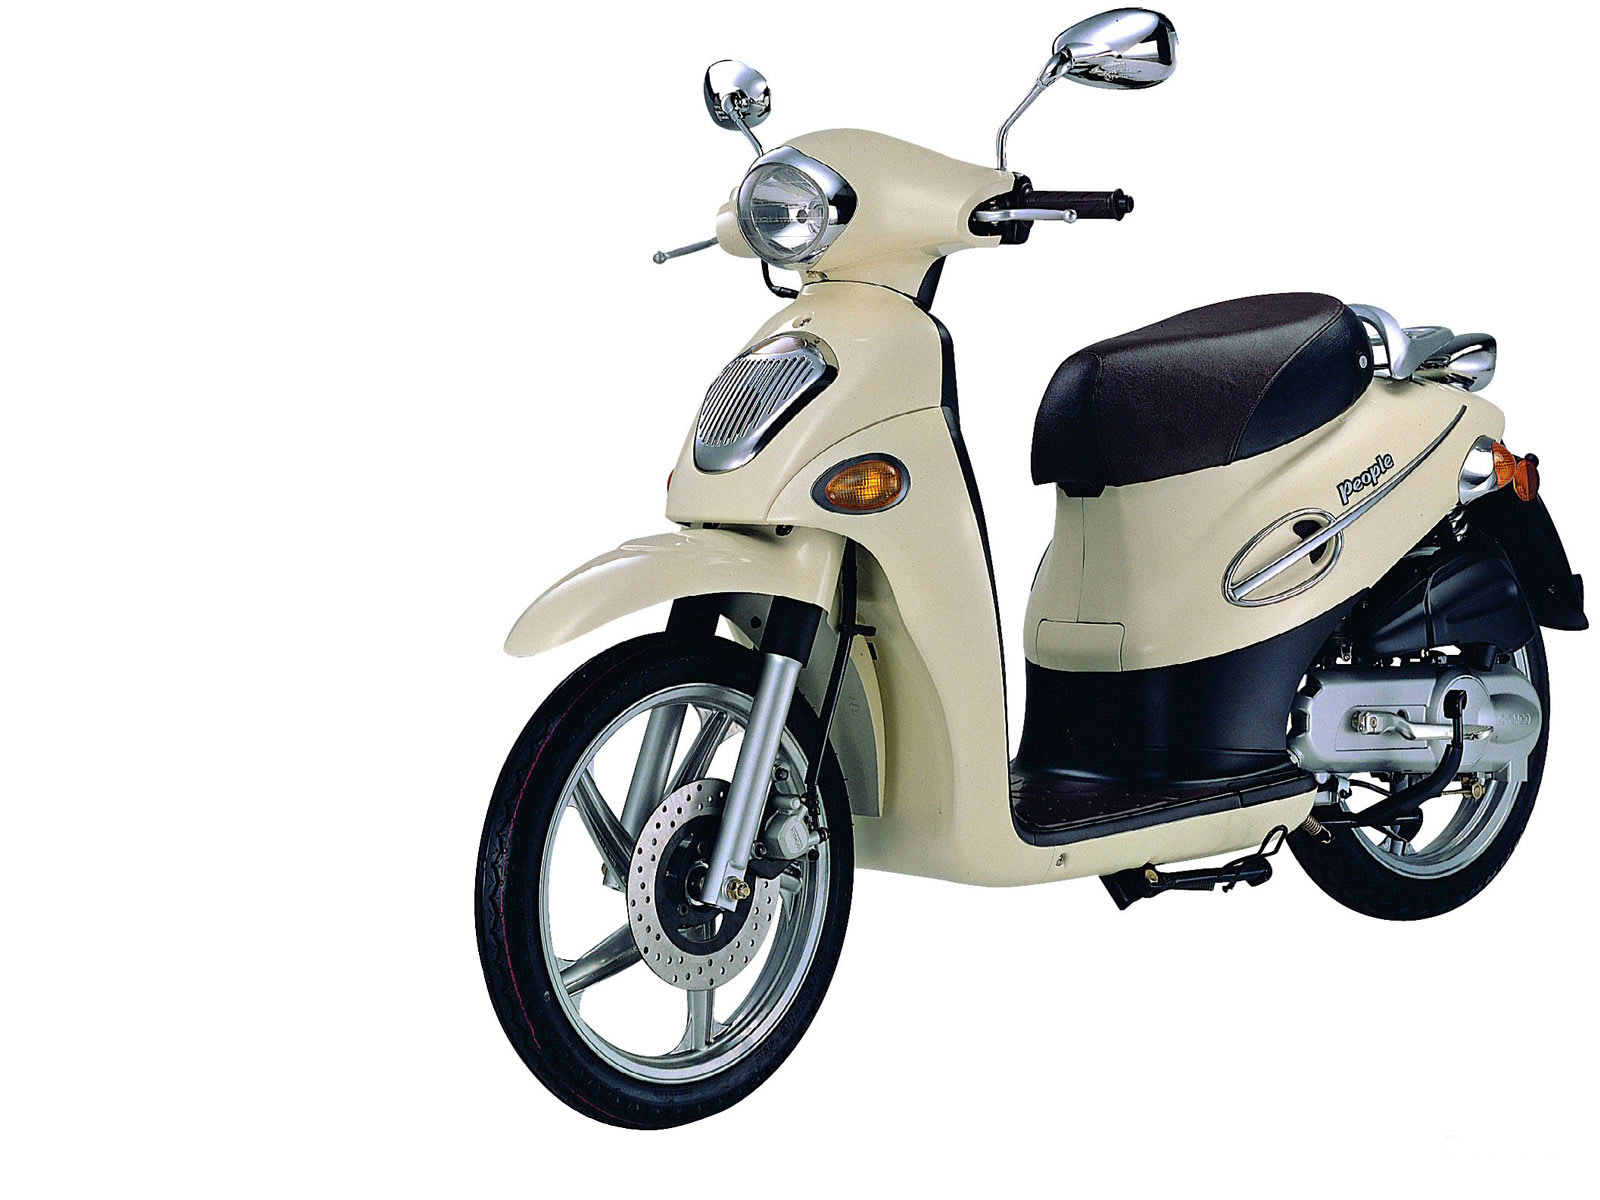 Kymco Vitality 50 images #101908